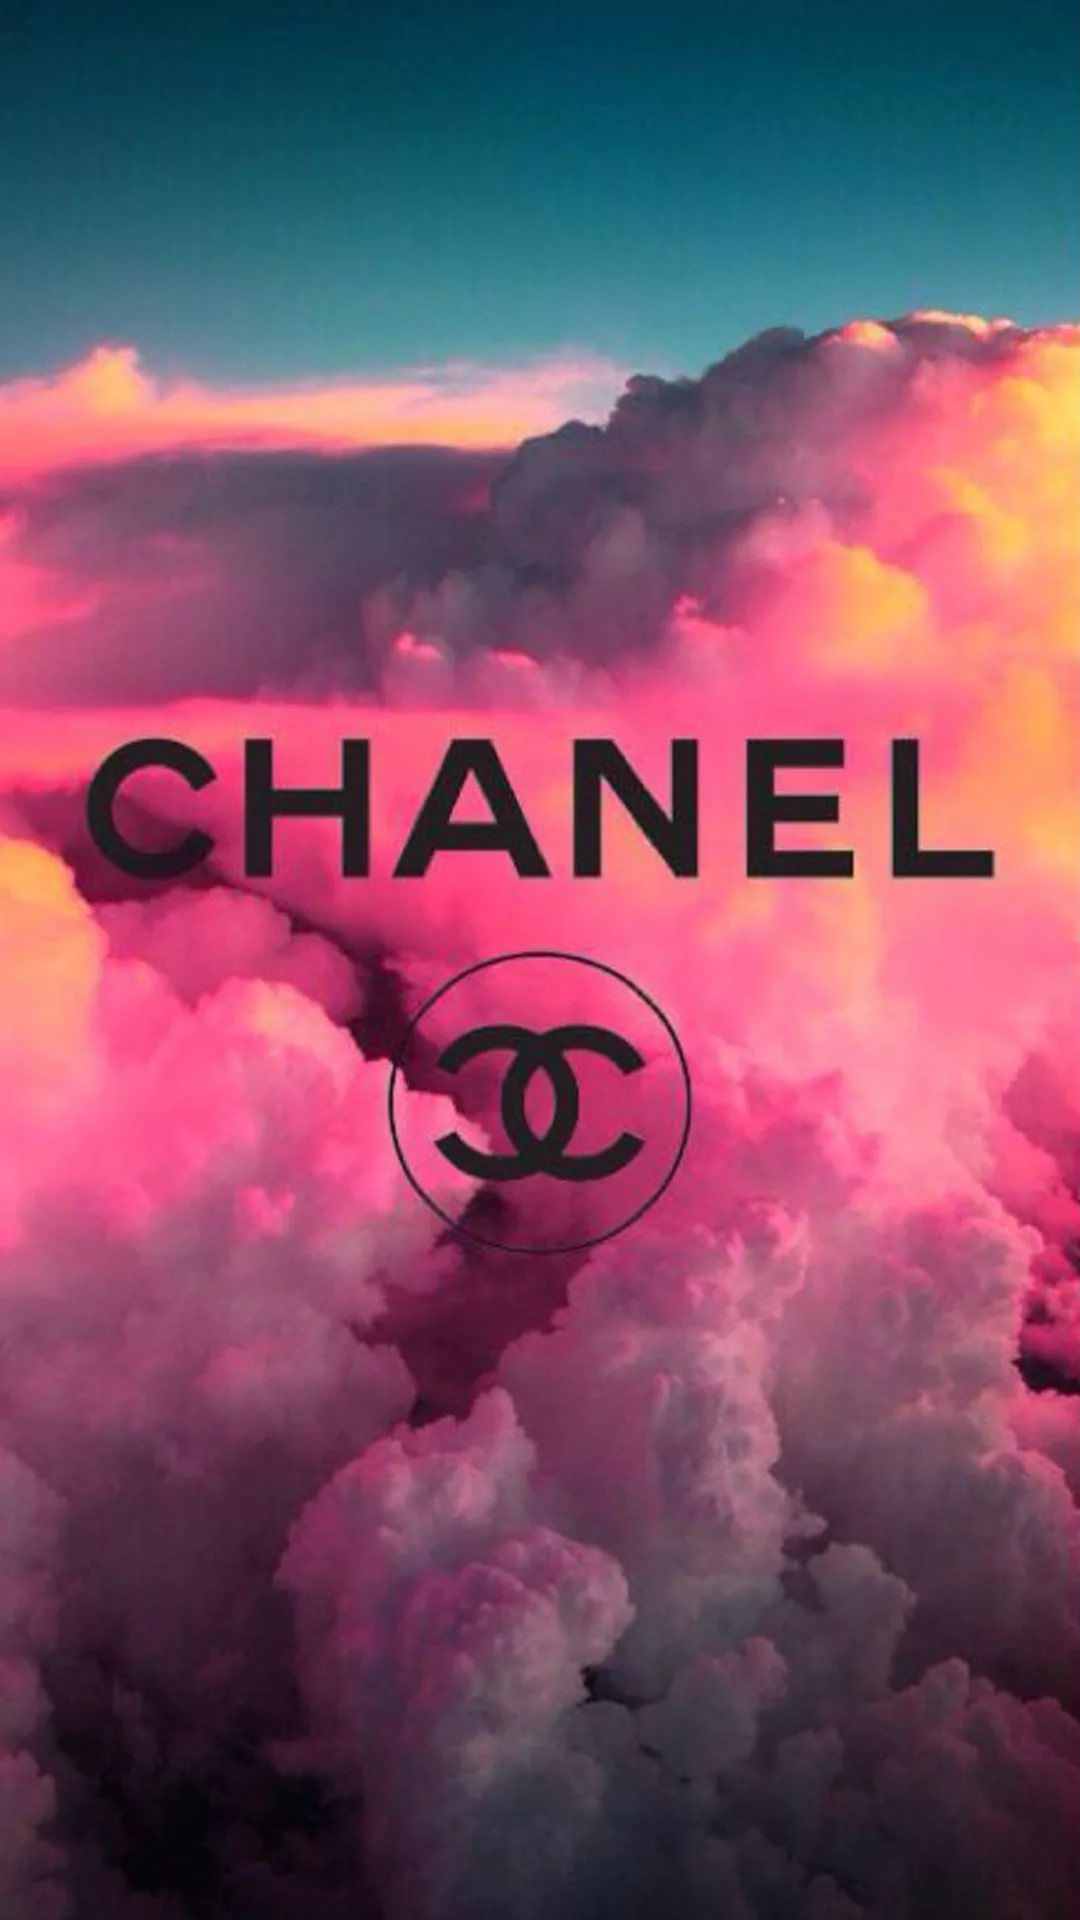 Chanel Background iPhone 6 wallpaper